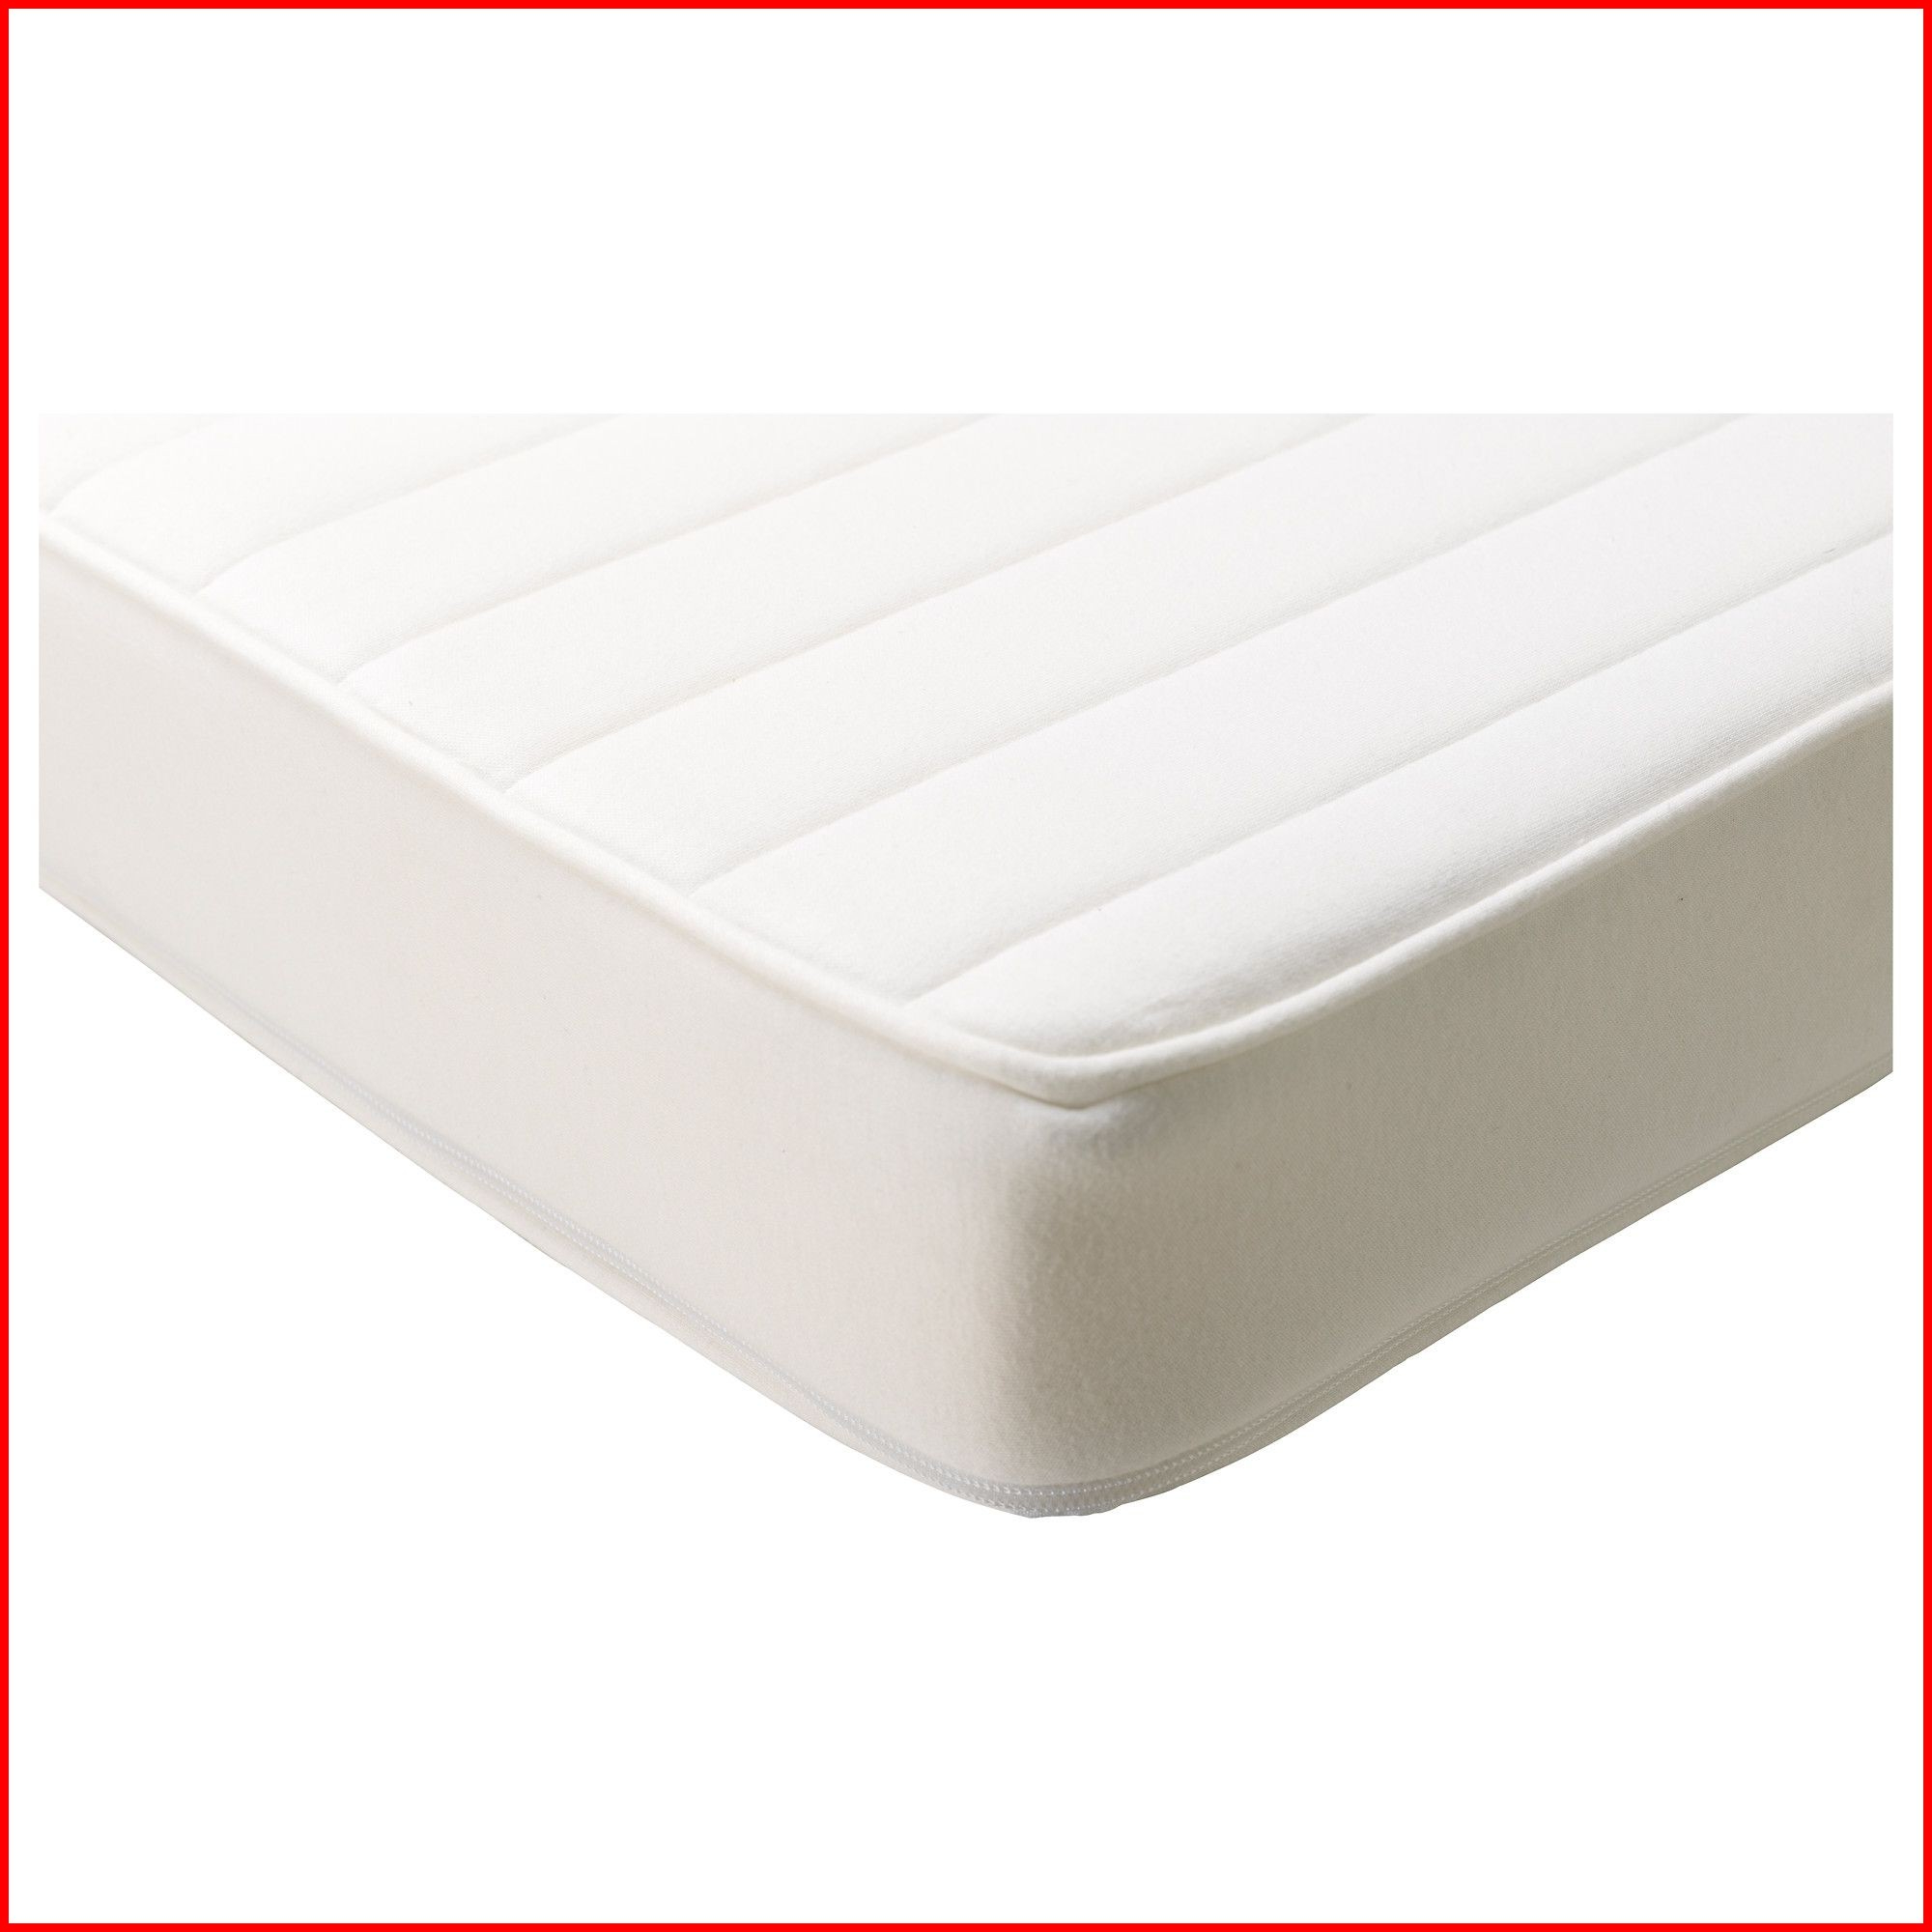 Colchon Inflable Ikea Zwd9 Colchones Inflables Ikea Vyssa Sk Nt Colch N Para Cama Ni O